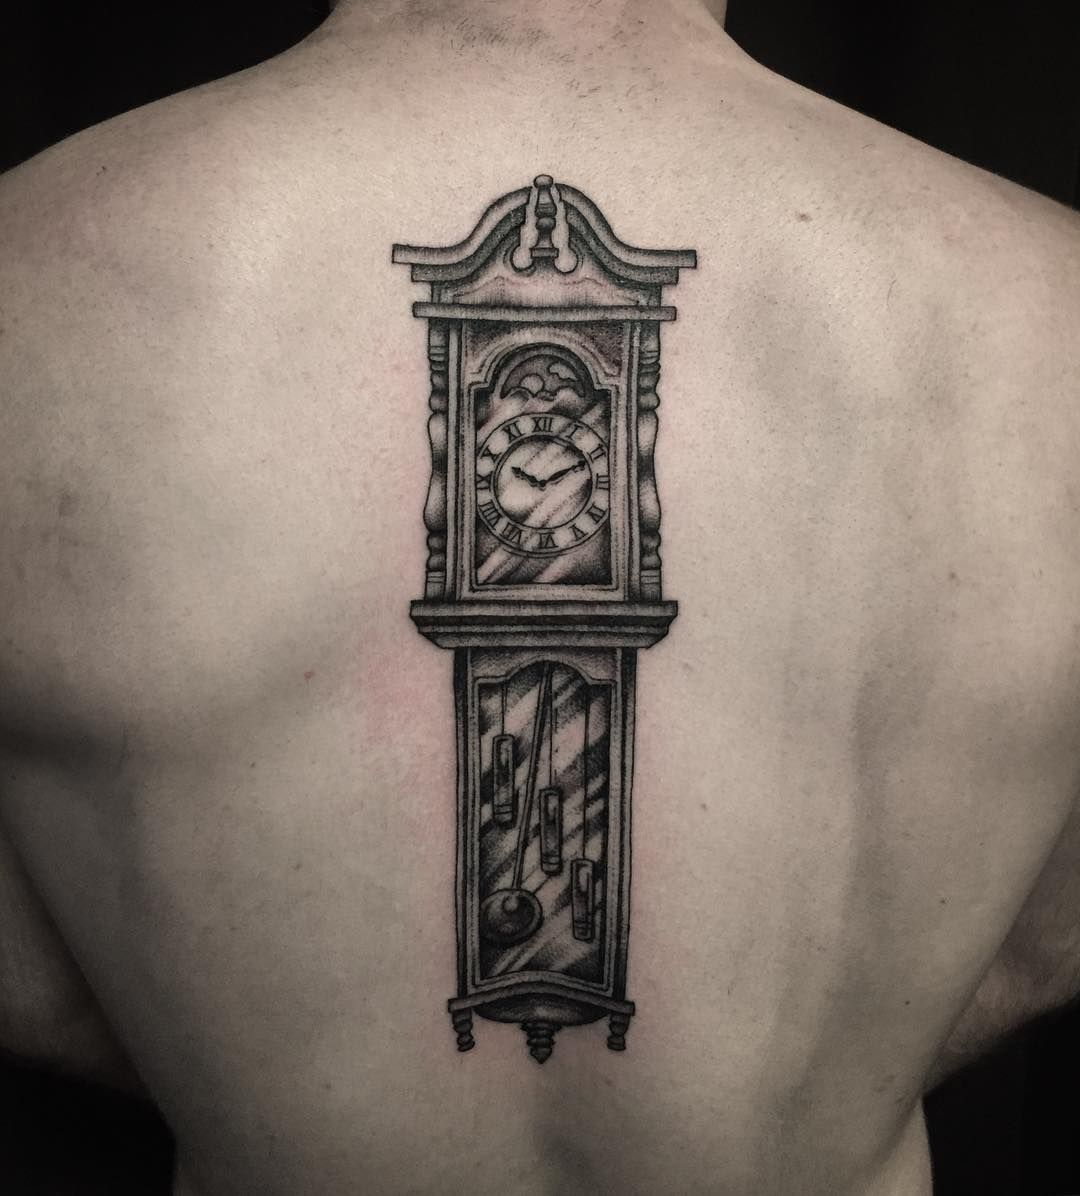 Ben S Grandfather Had 85 Grandfather Clocks In His House I Have Time Today Before 6 Allied Tat Grandfather Clock Tattoo Grandfather Clock Grandfather Tattoo